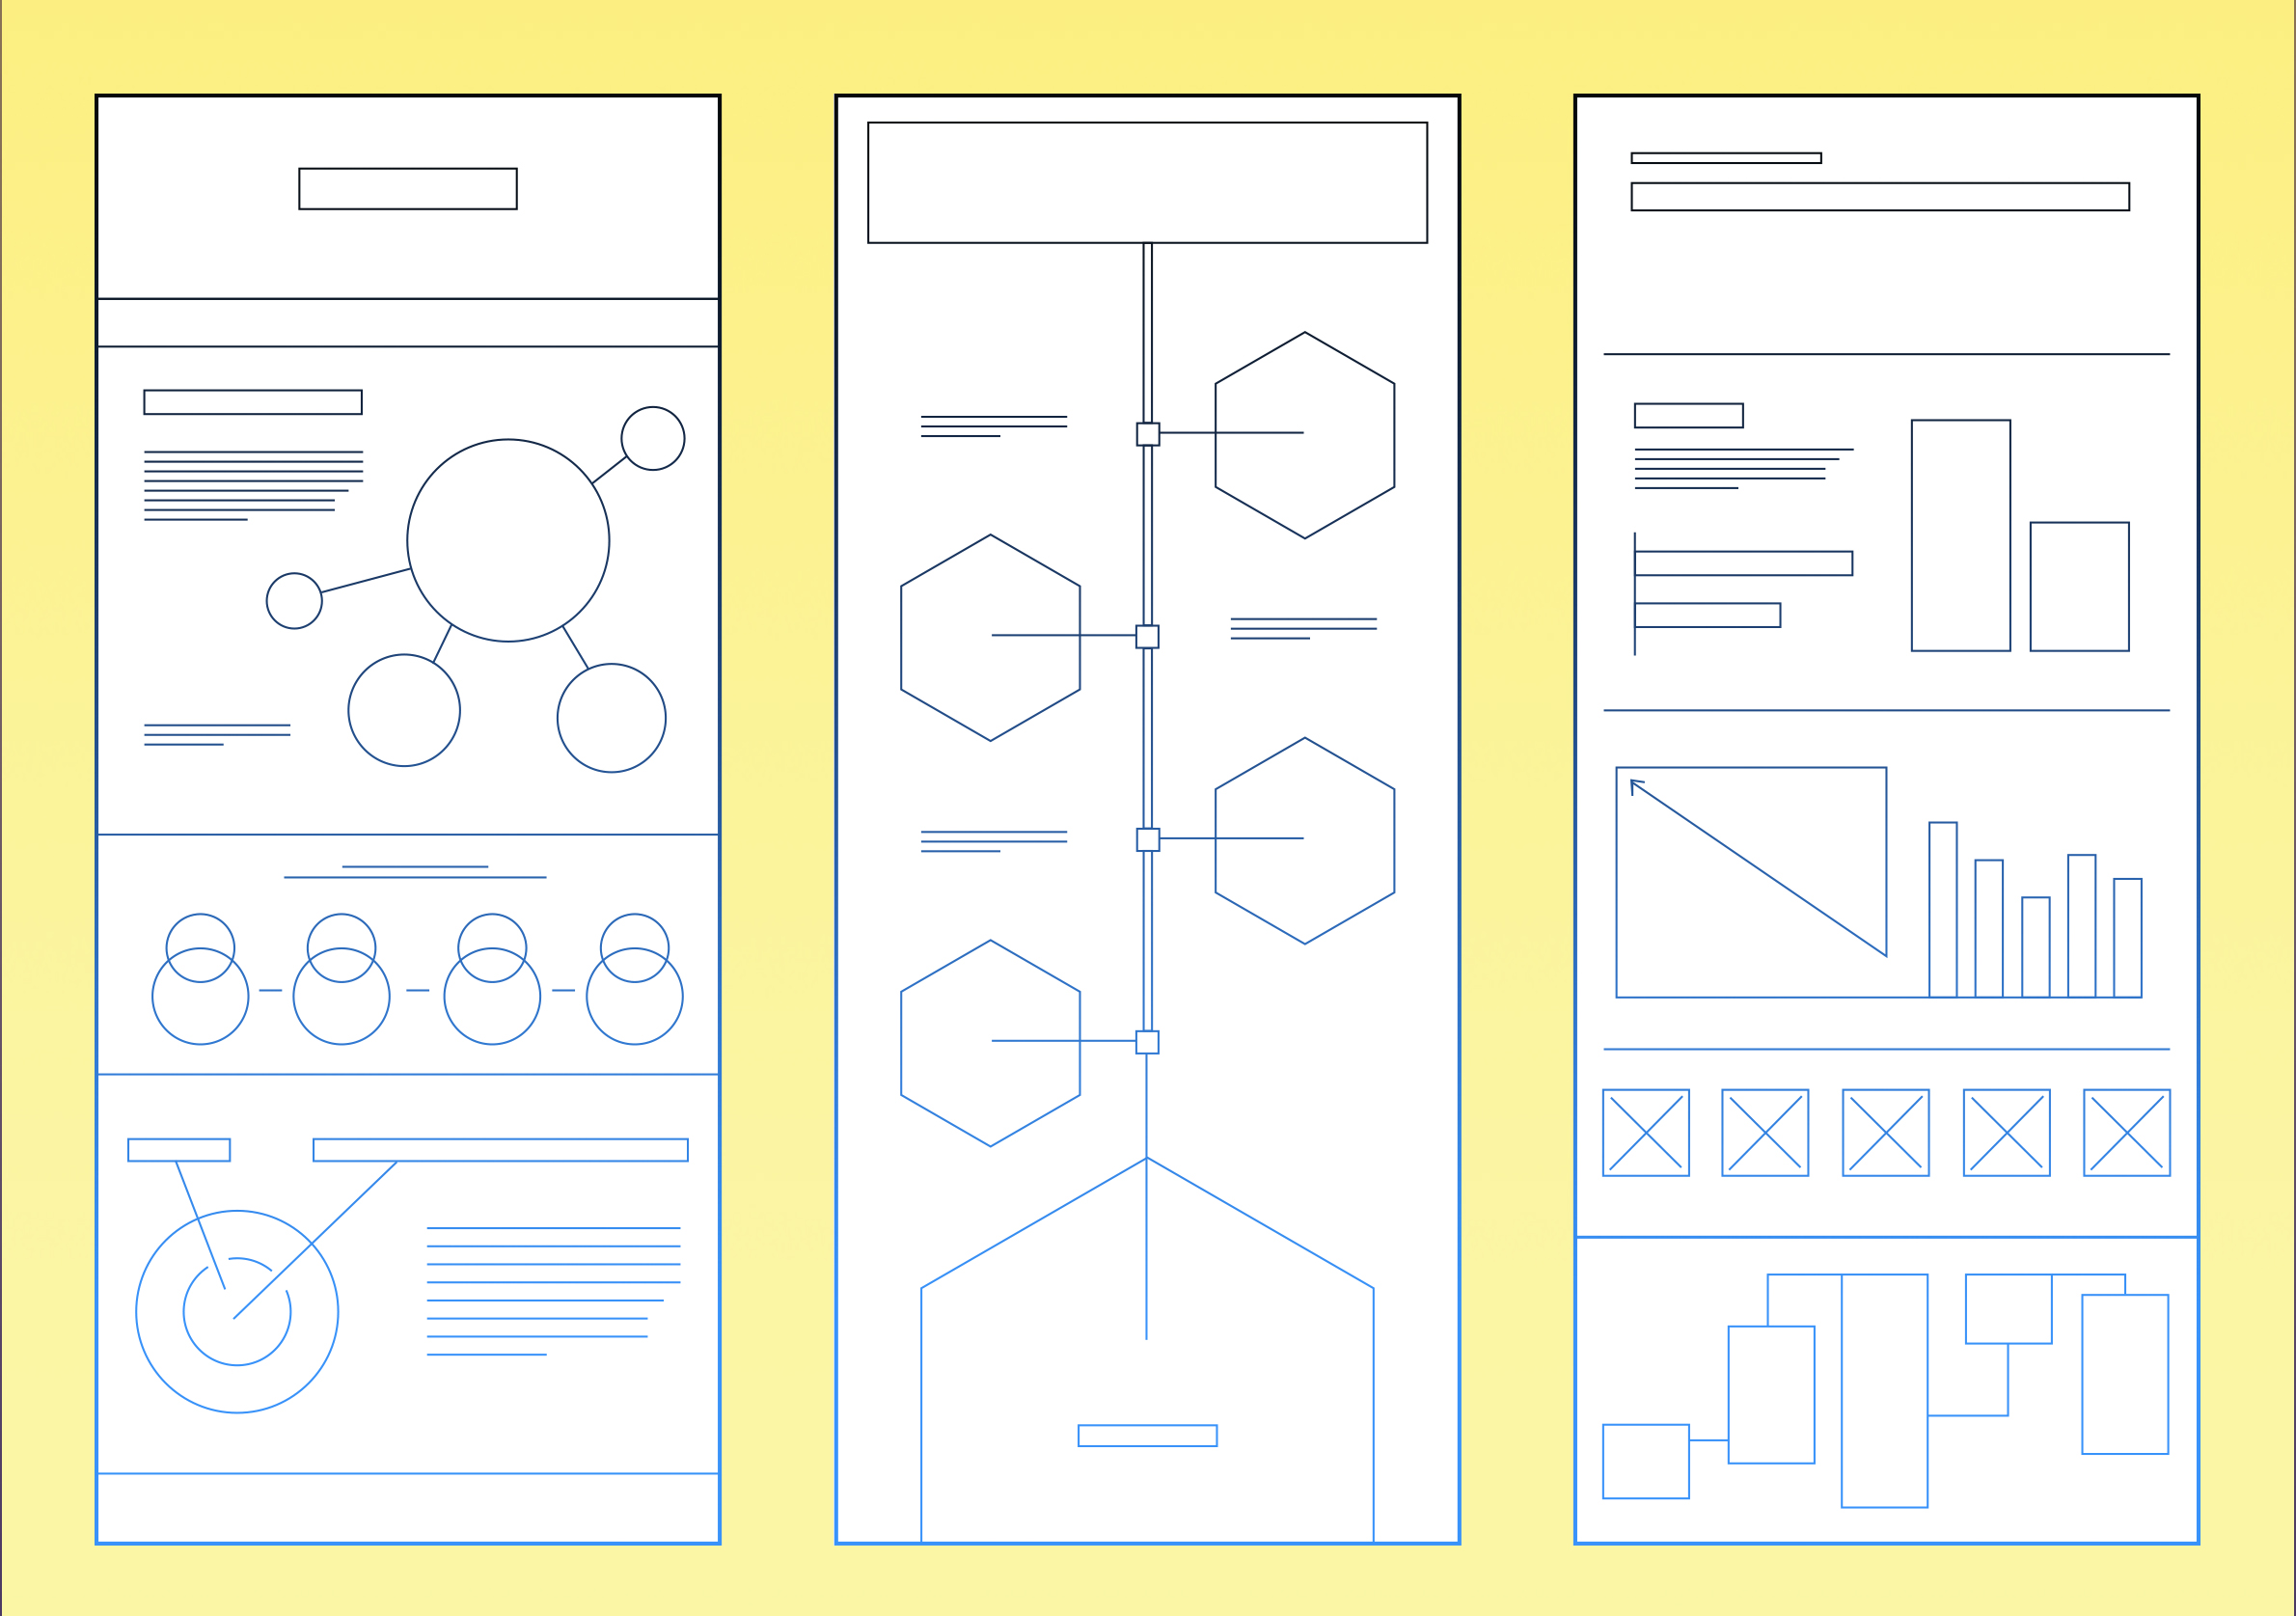 infographic wireframes examples by GraphicMama